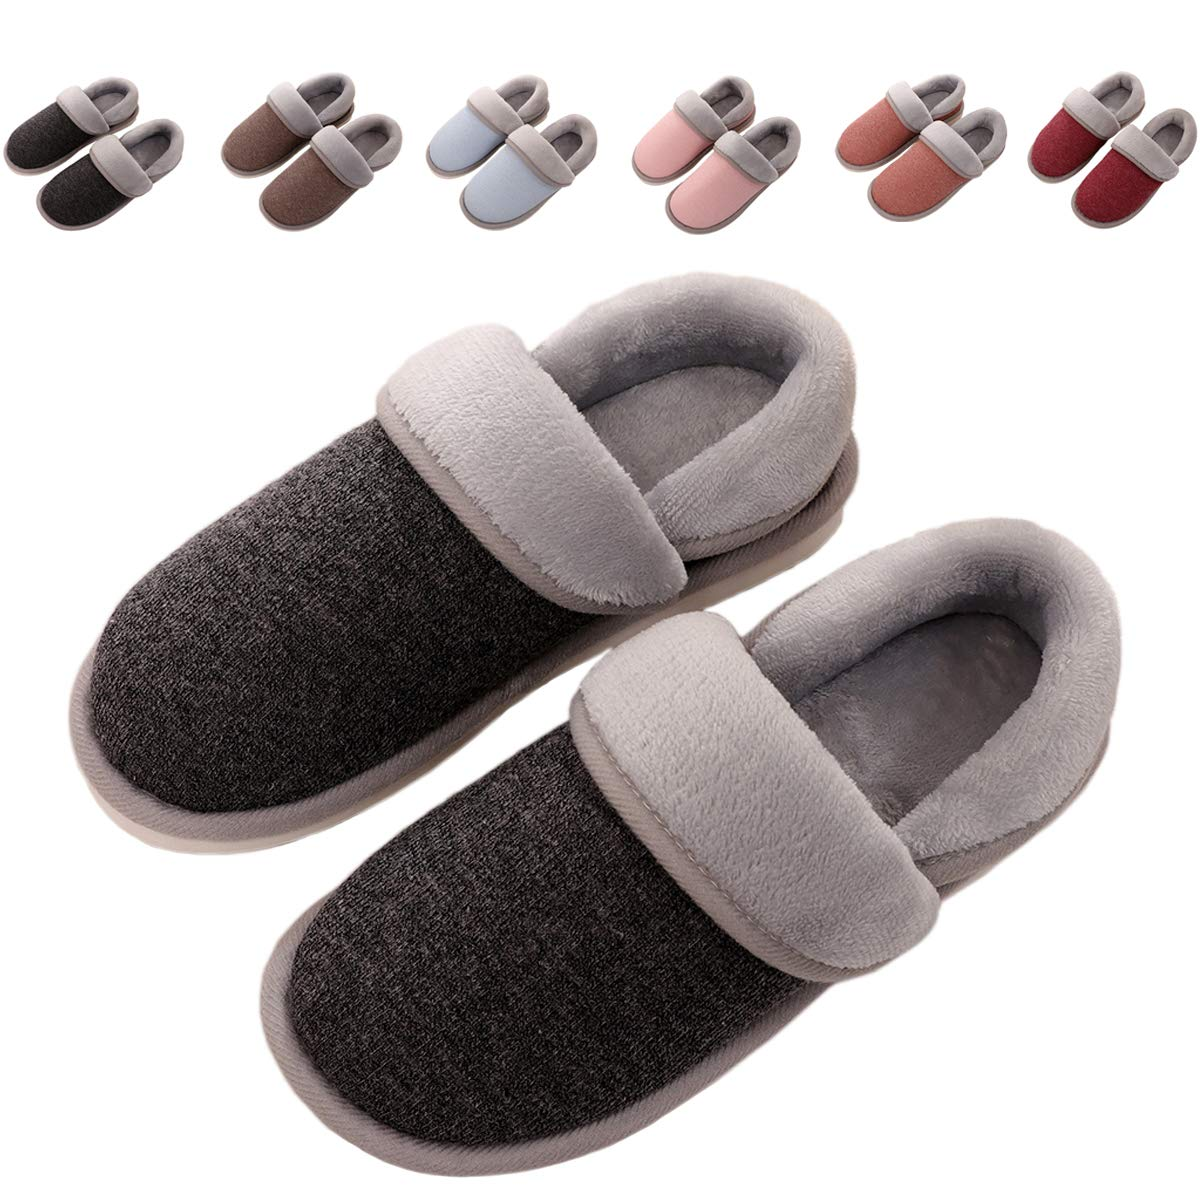 OOLIVUPF Womens Mens Cotton Slippers Memory Foam Plush Lining Slip-on House Shoes Indoor Outdoor(FBA) cottonslippers666